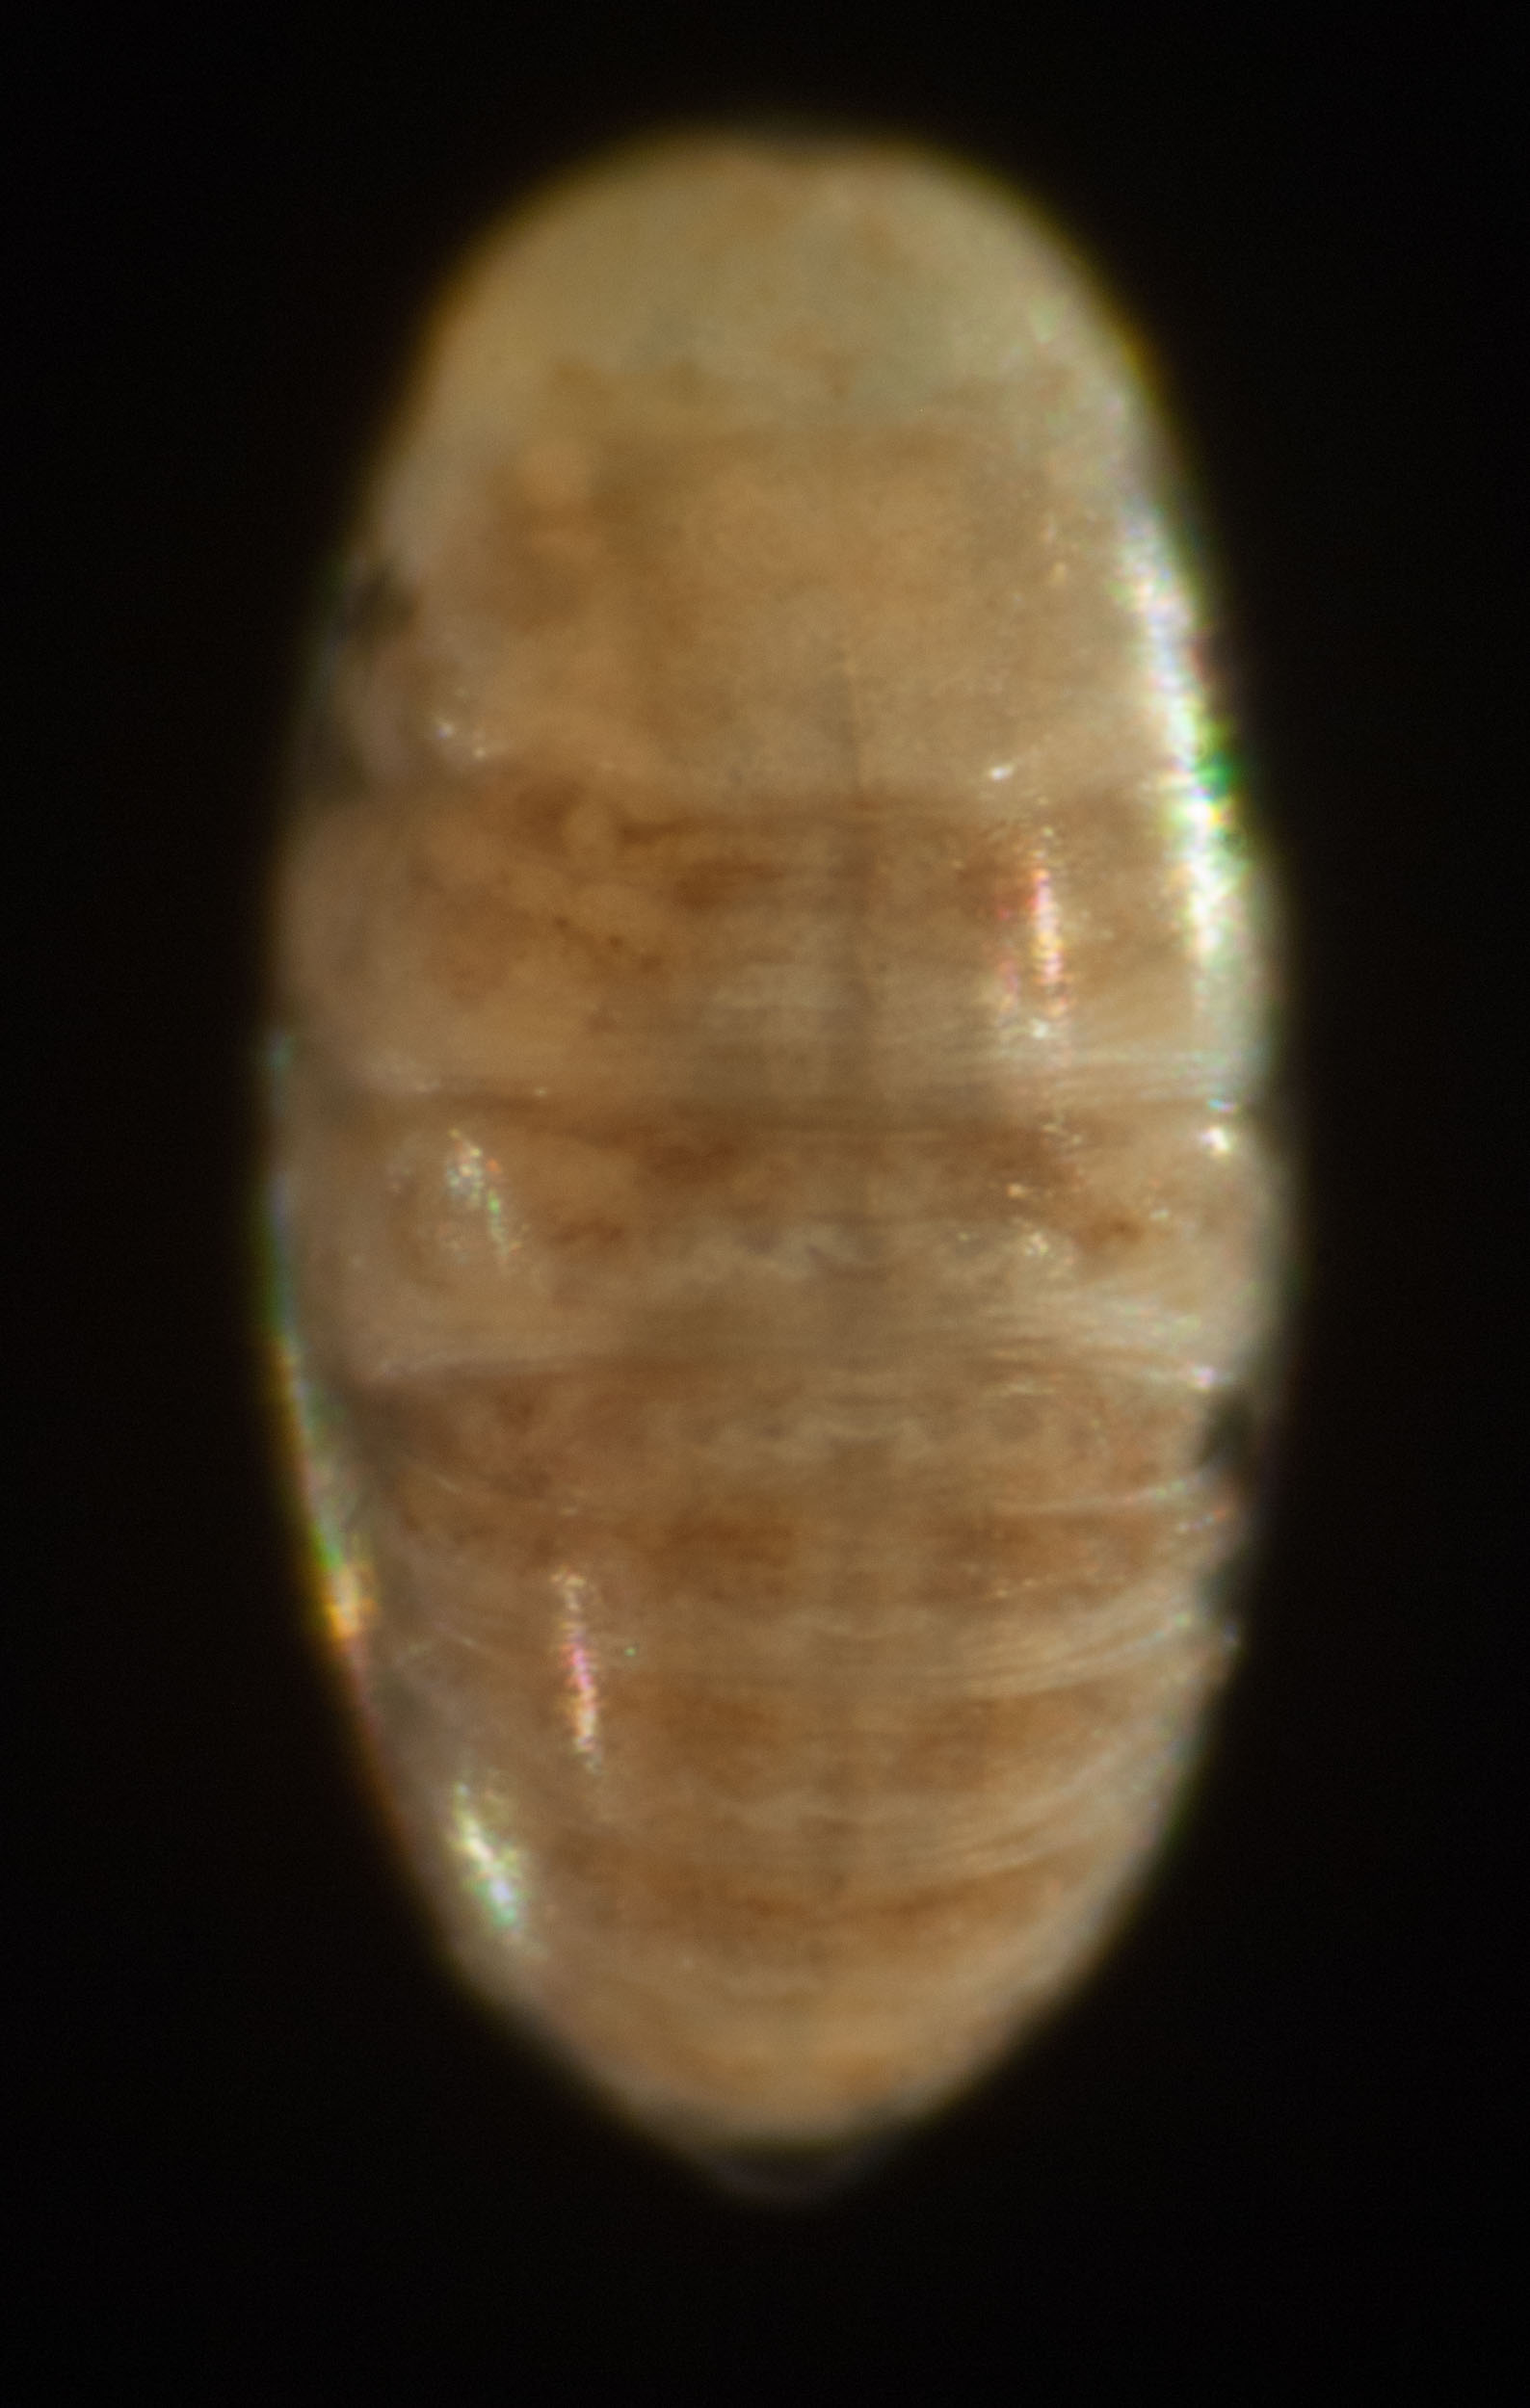 The same embryo viewed from the back shows that its flanks have grown around the yolk and fused to form a complete body tube. The yolk is now contained within the embryonic gut. This will nourish the larva for the first day or so after hatching. The dark line down the dorsal midline is the developing heart.